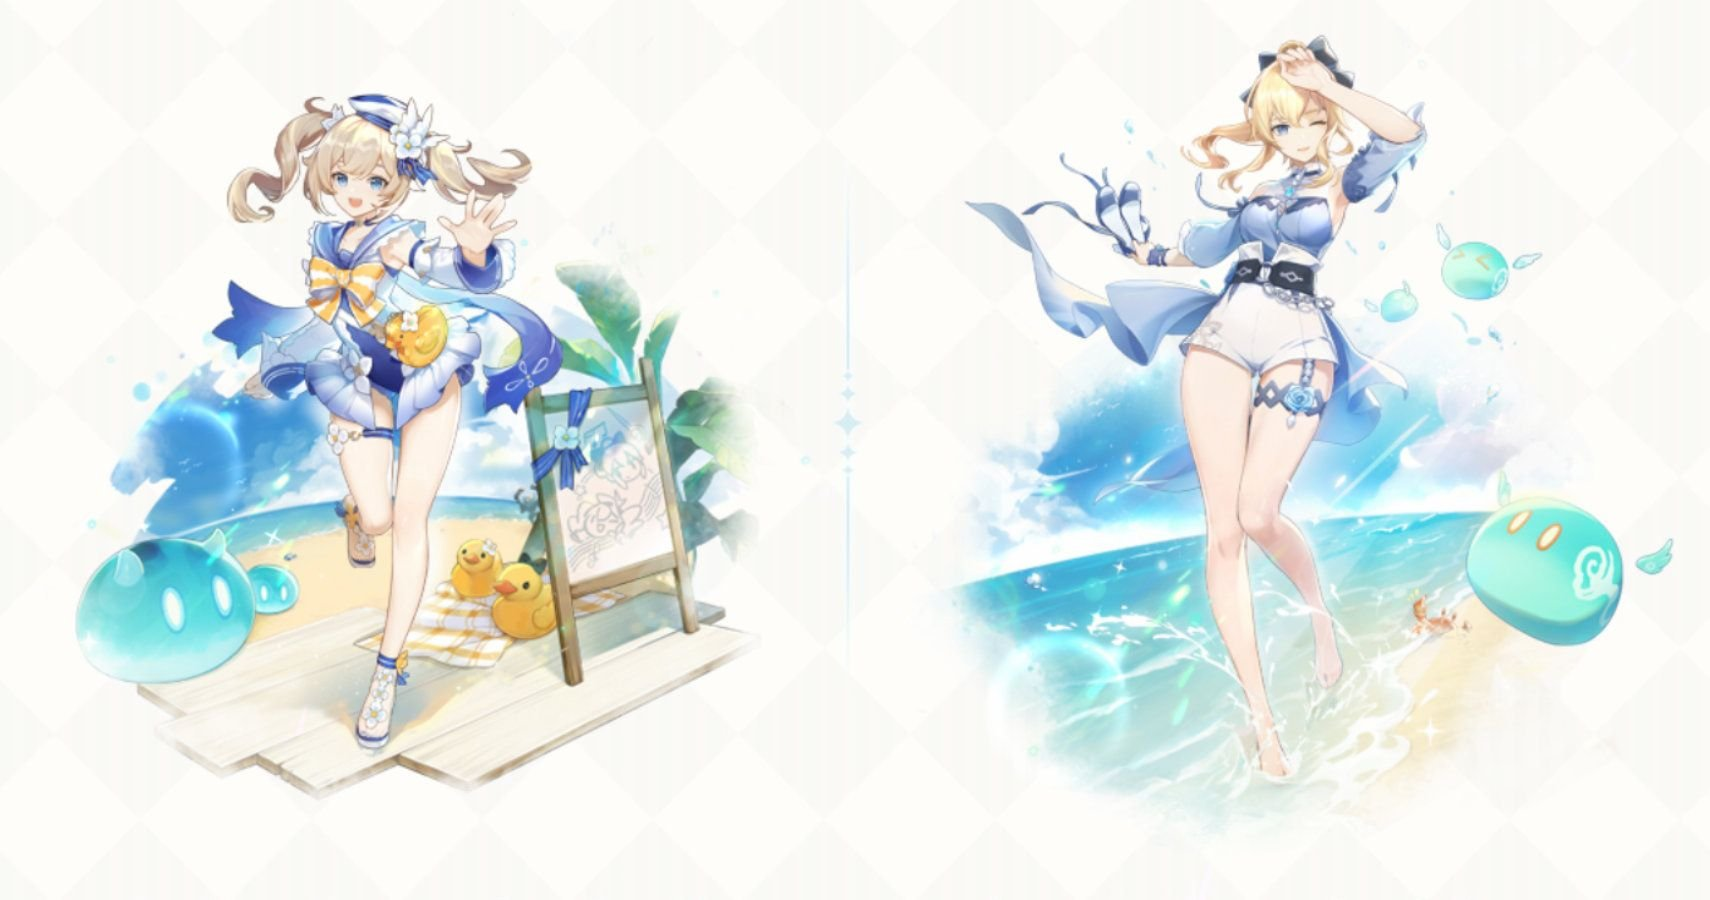 Genshin Impact: How To Get Jean And Barbara's Summer Outfits